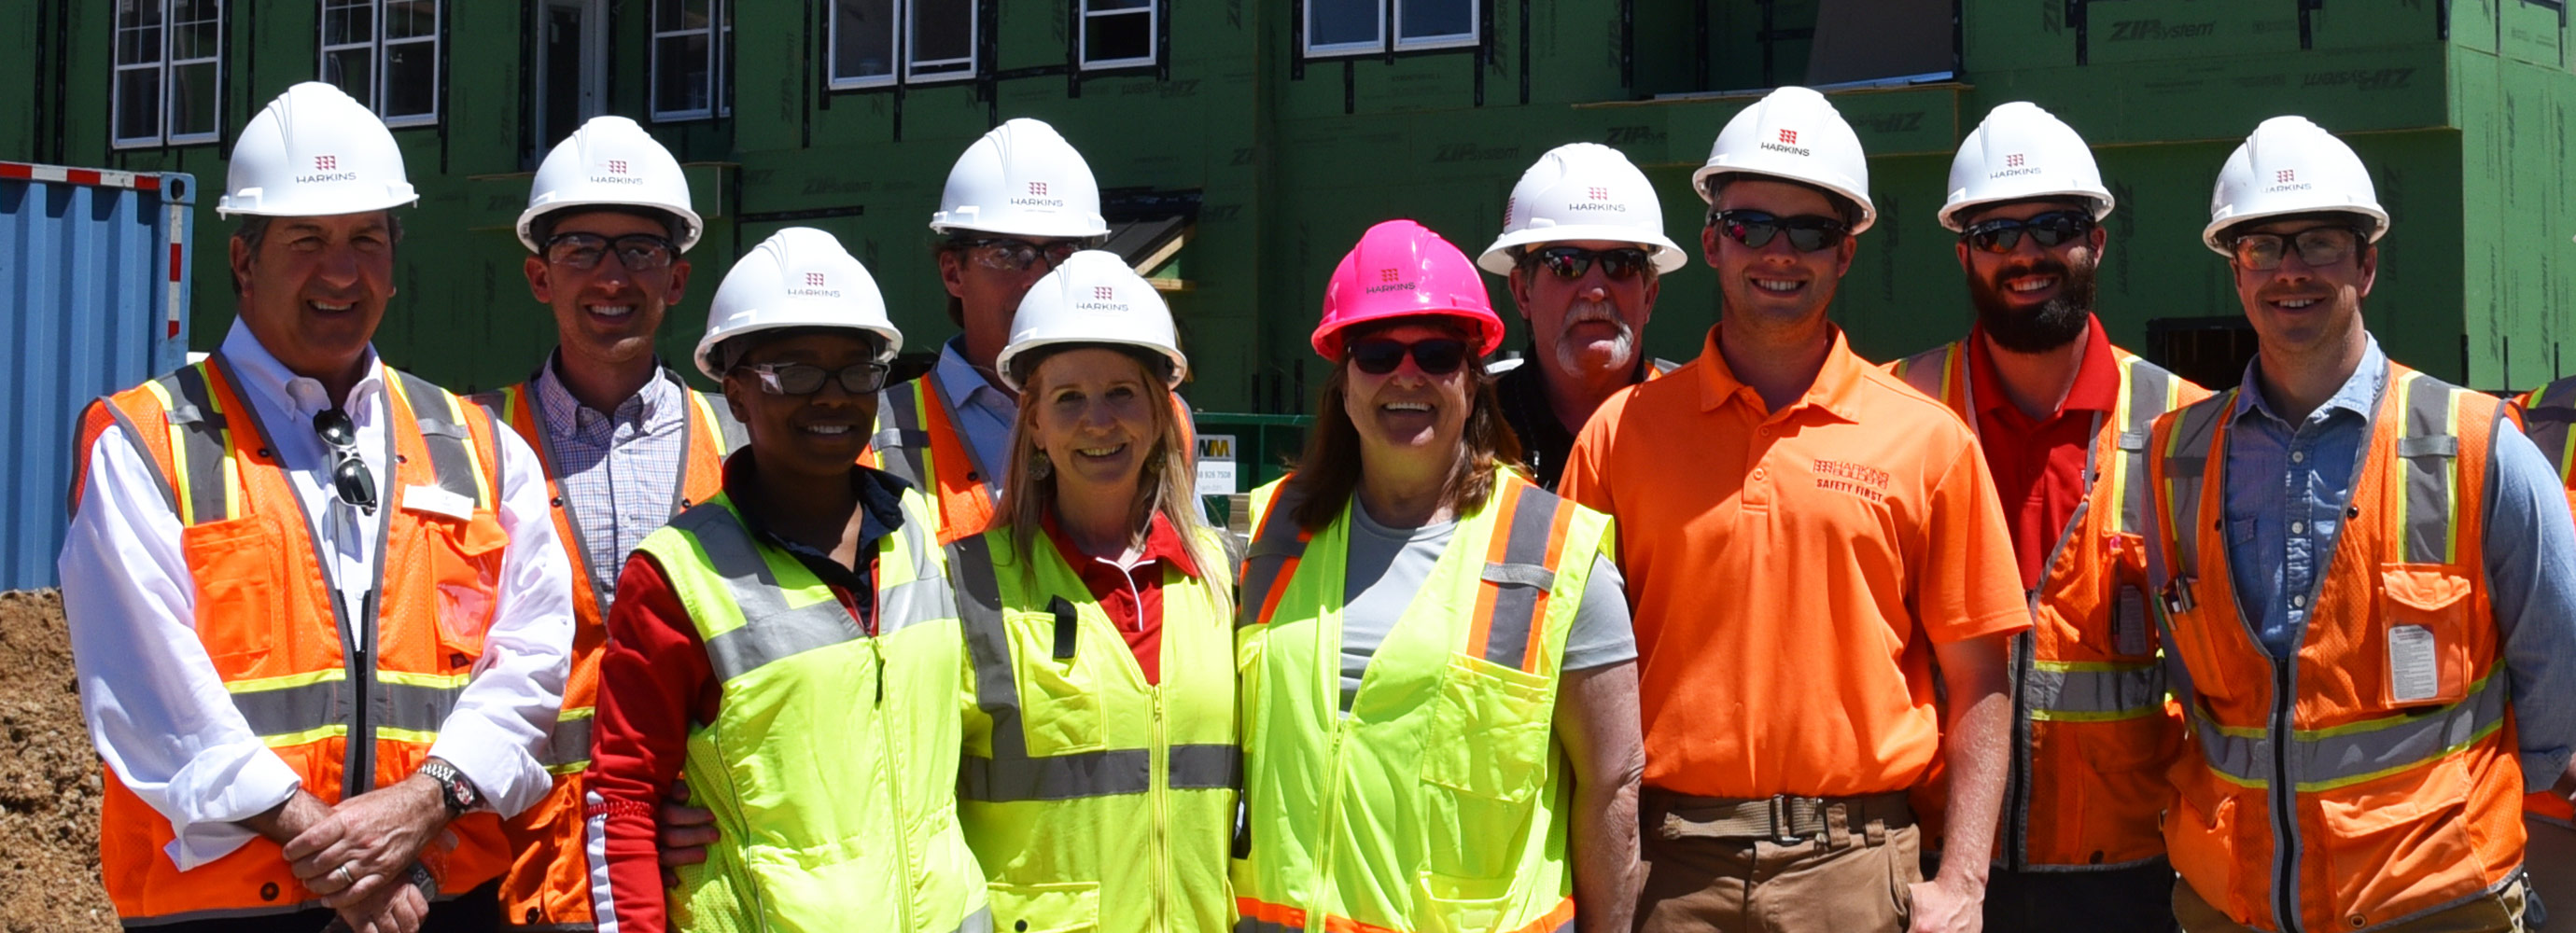 Smiling faces and construction hats on site at Community Parc